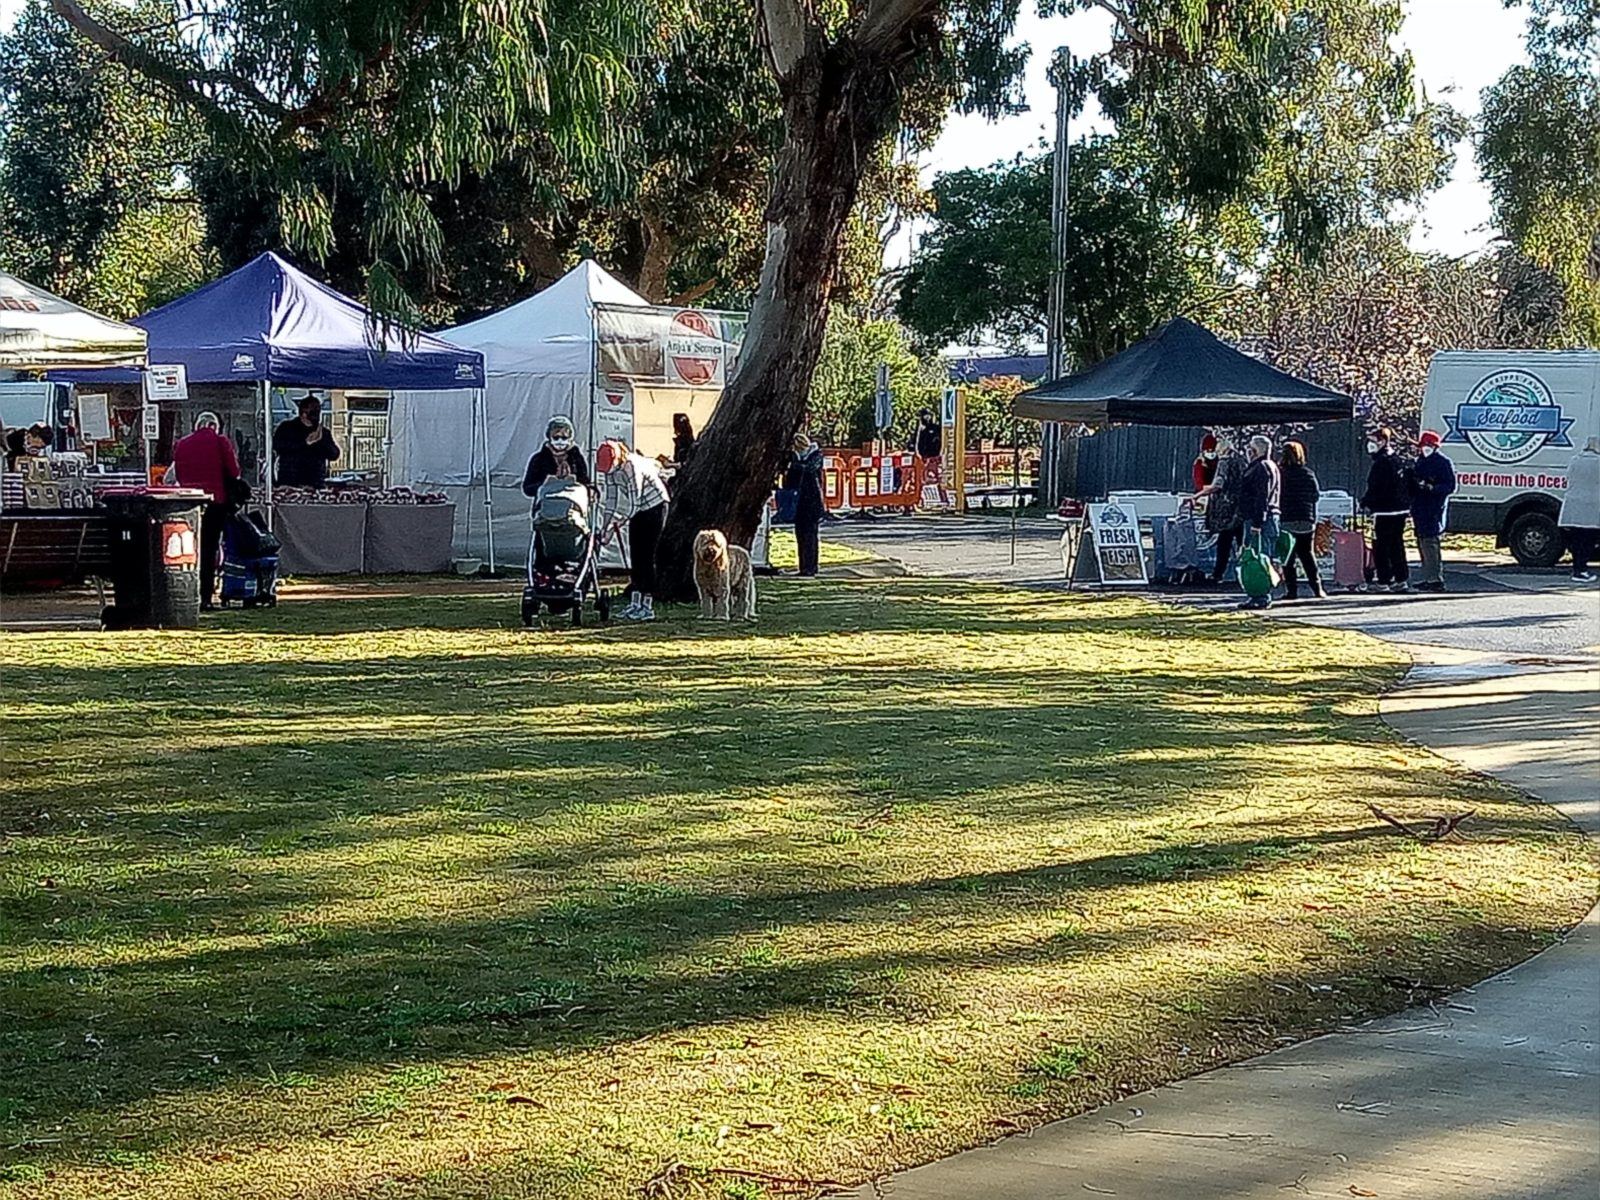 Market goers at the Dingley Village Farmers' Market